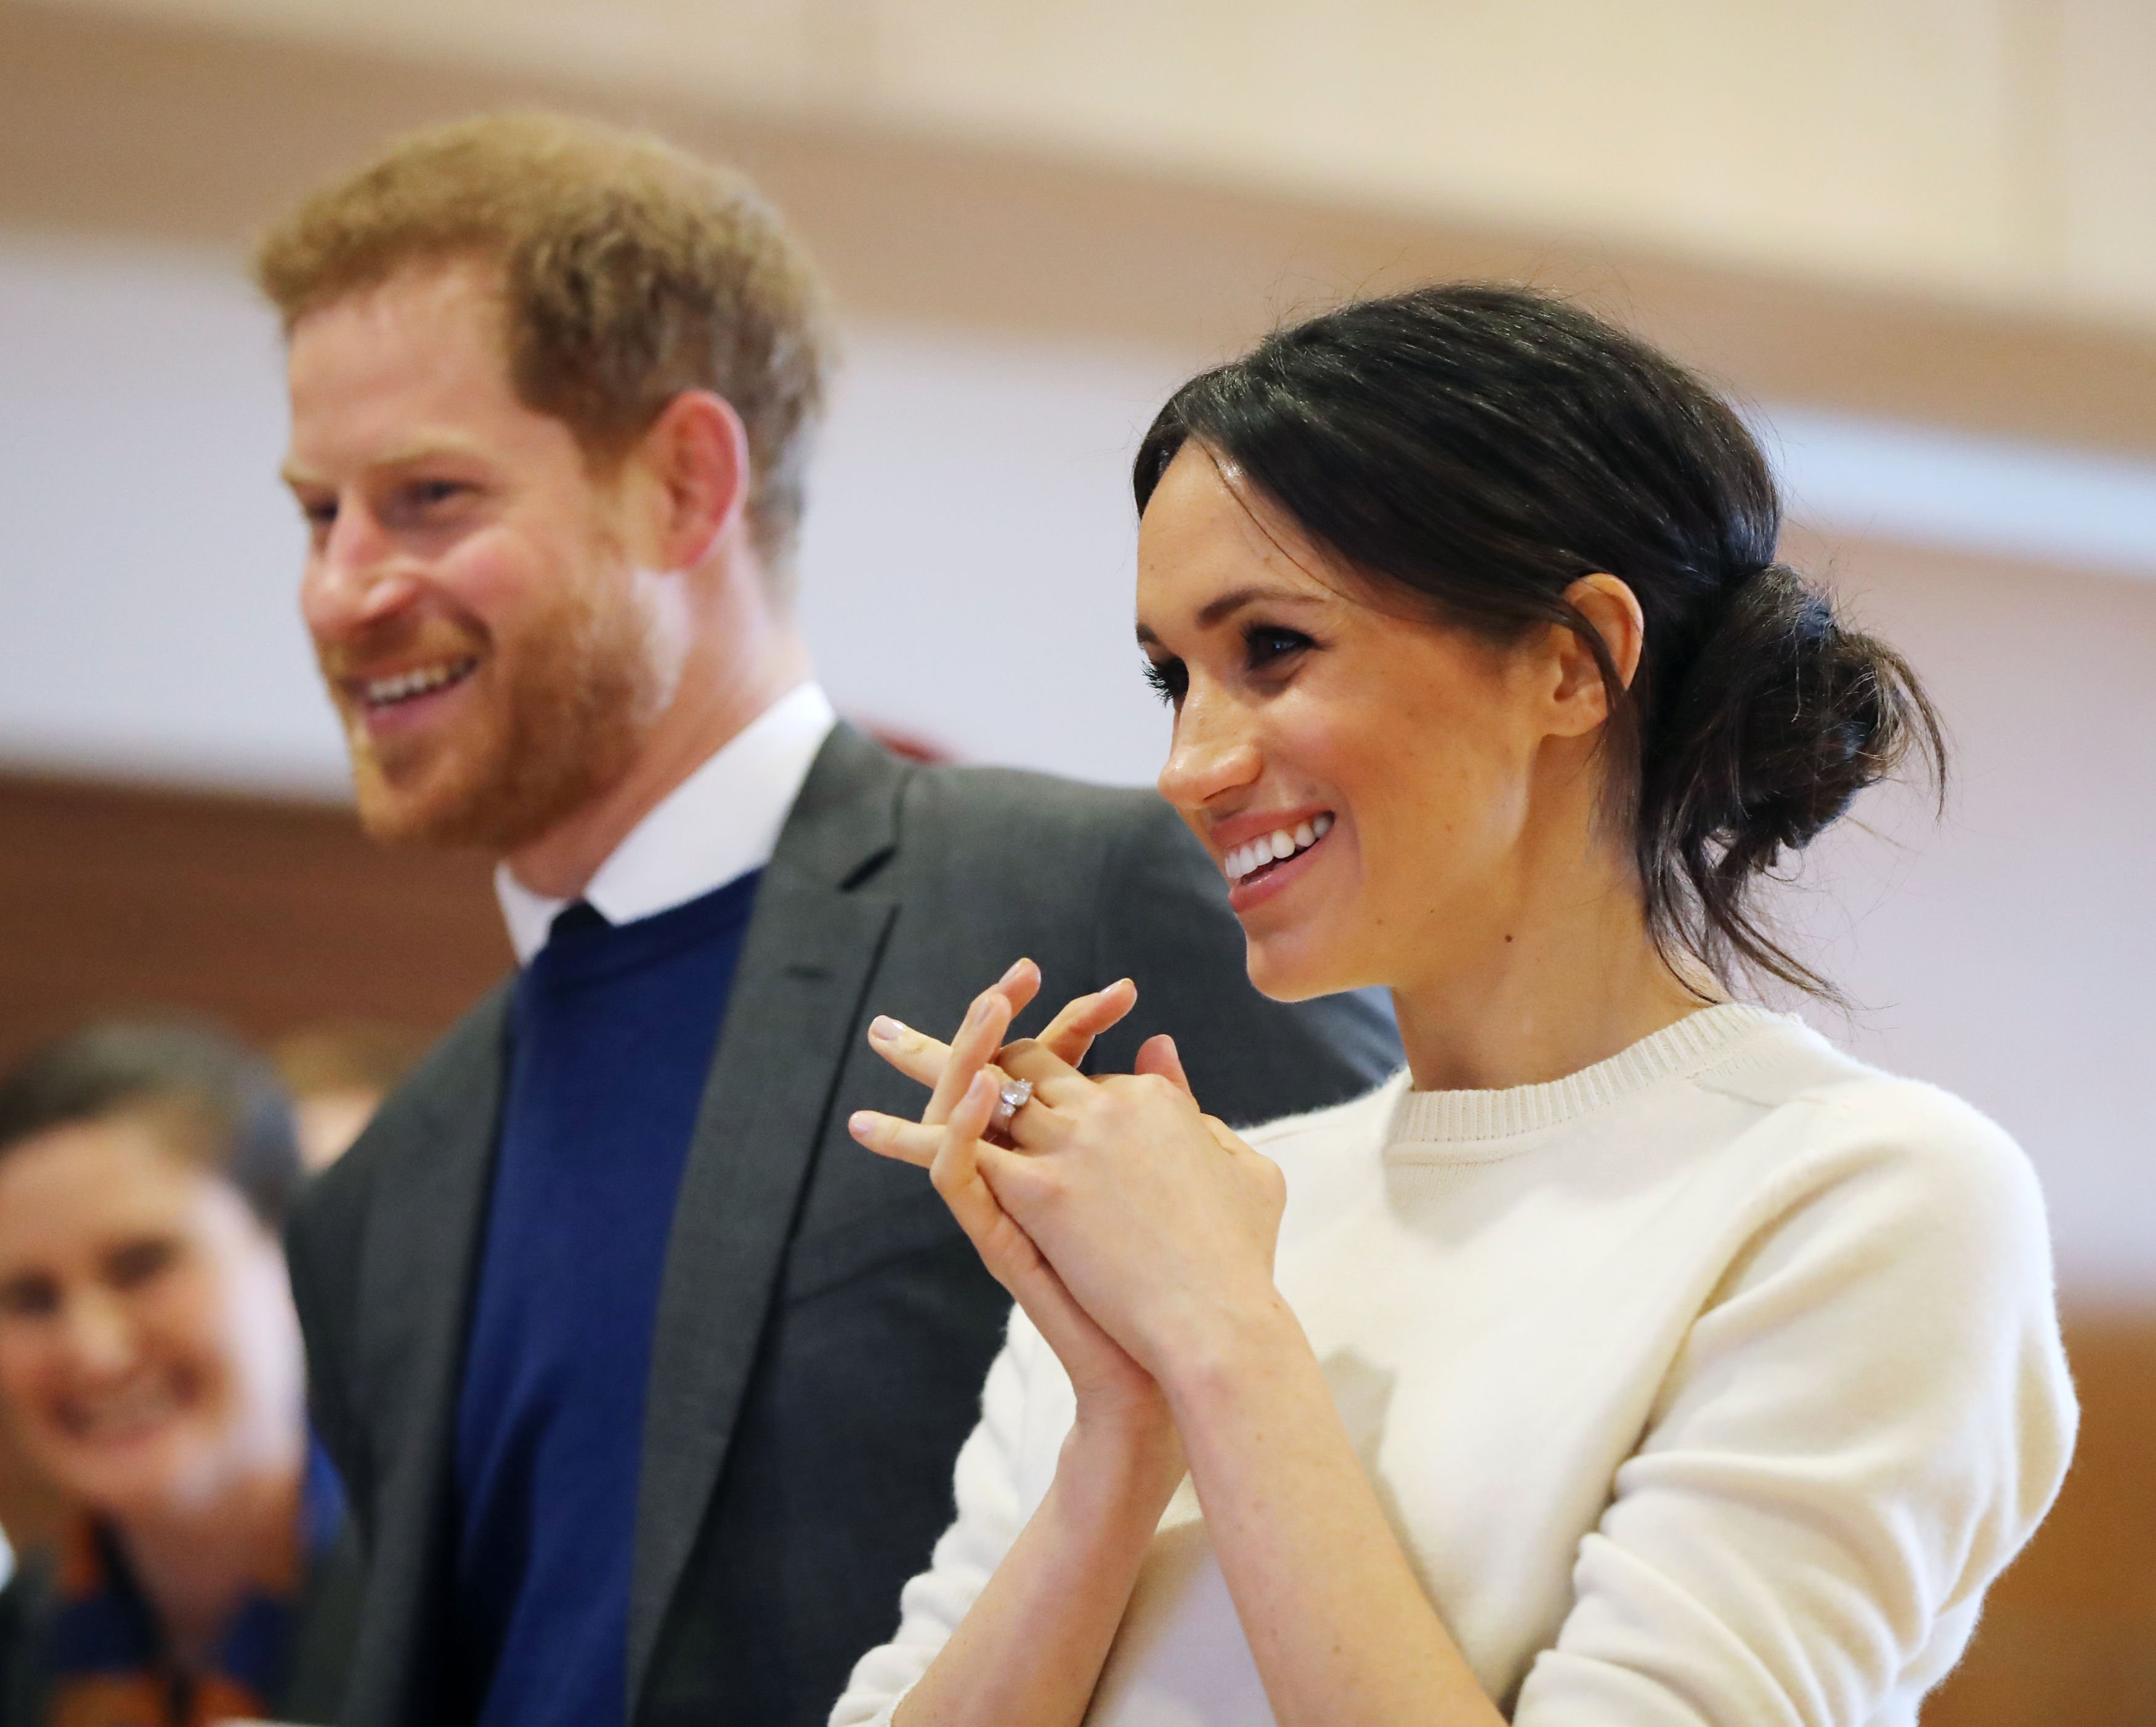 Prince Harry and Meghan Markle during a visit to Catalyst Inc science park in Belfast on March 23, 2018 in Belfast, Nothern Ireland   Photo: Getty Images